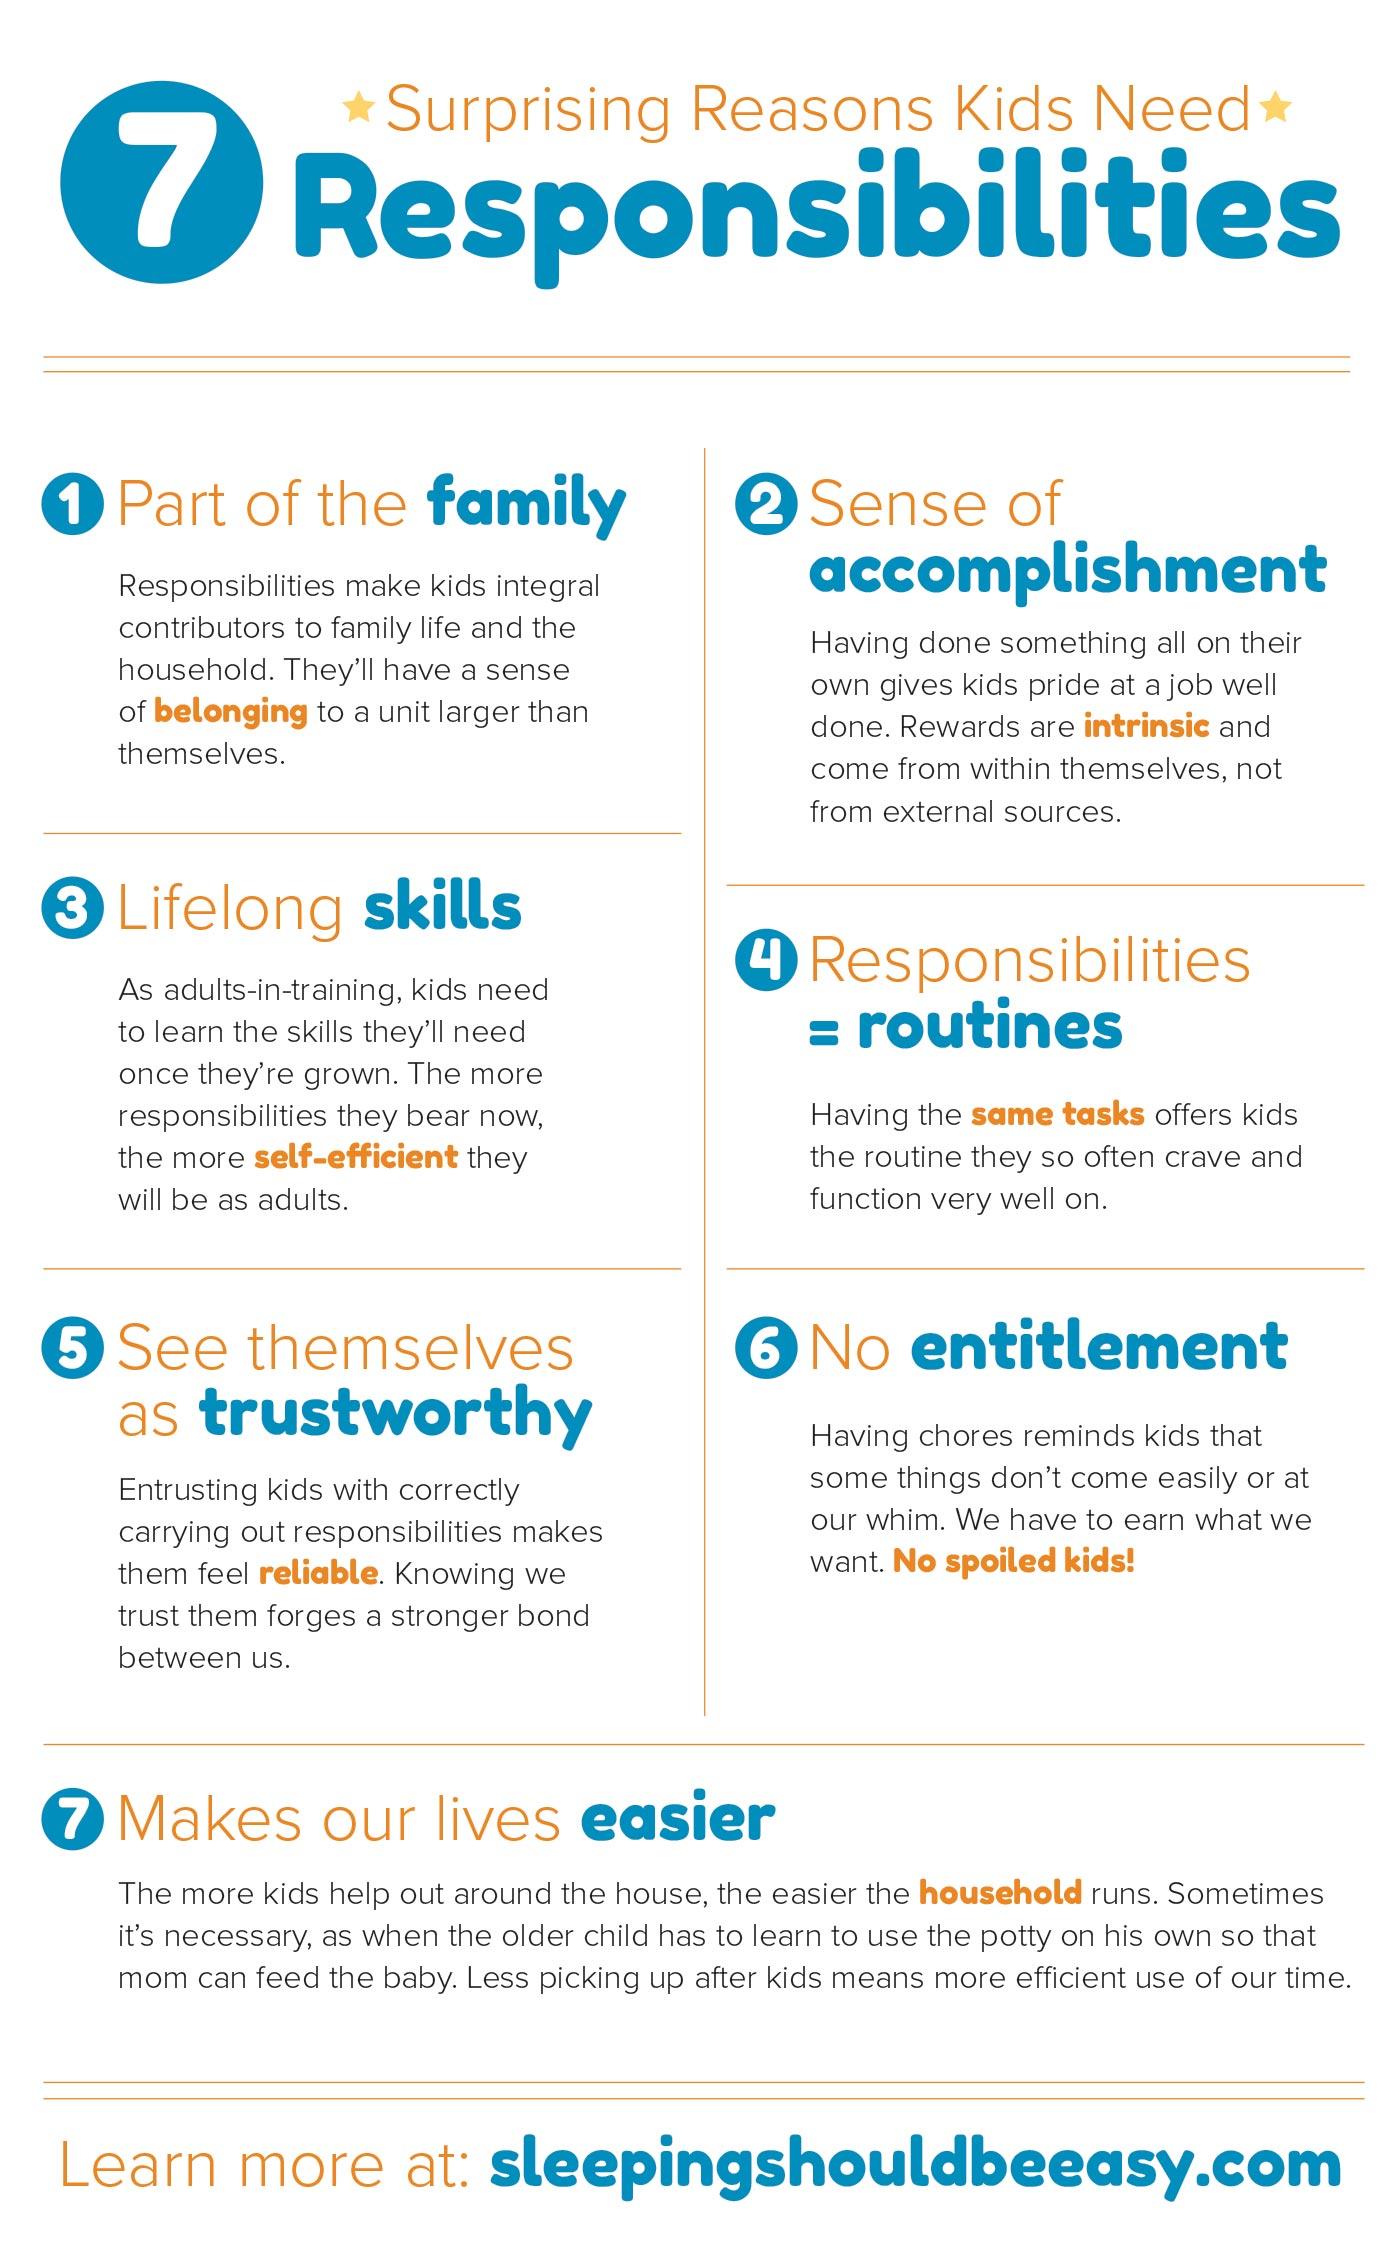 A PDF of surprising reasons kids need reponsibilities